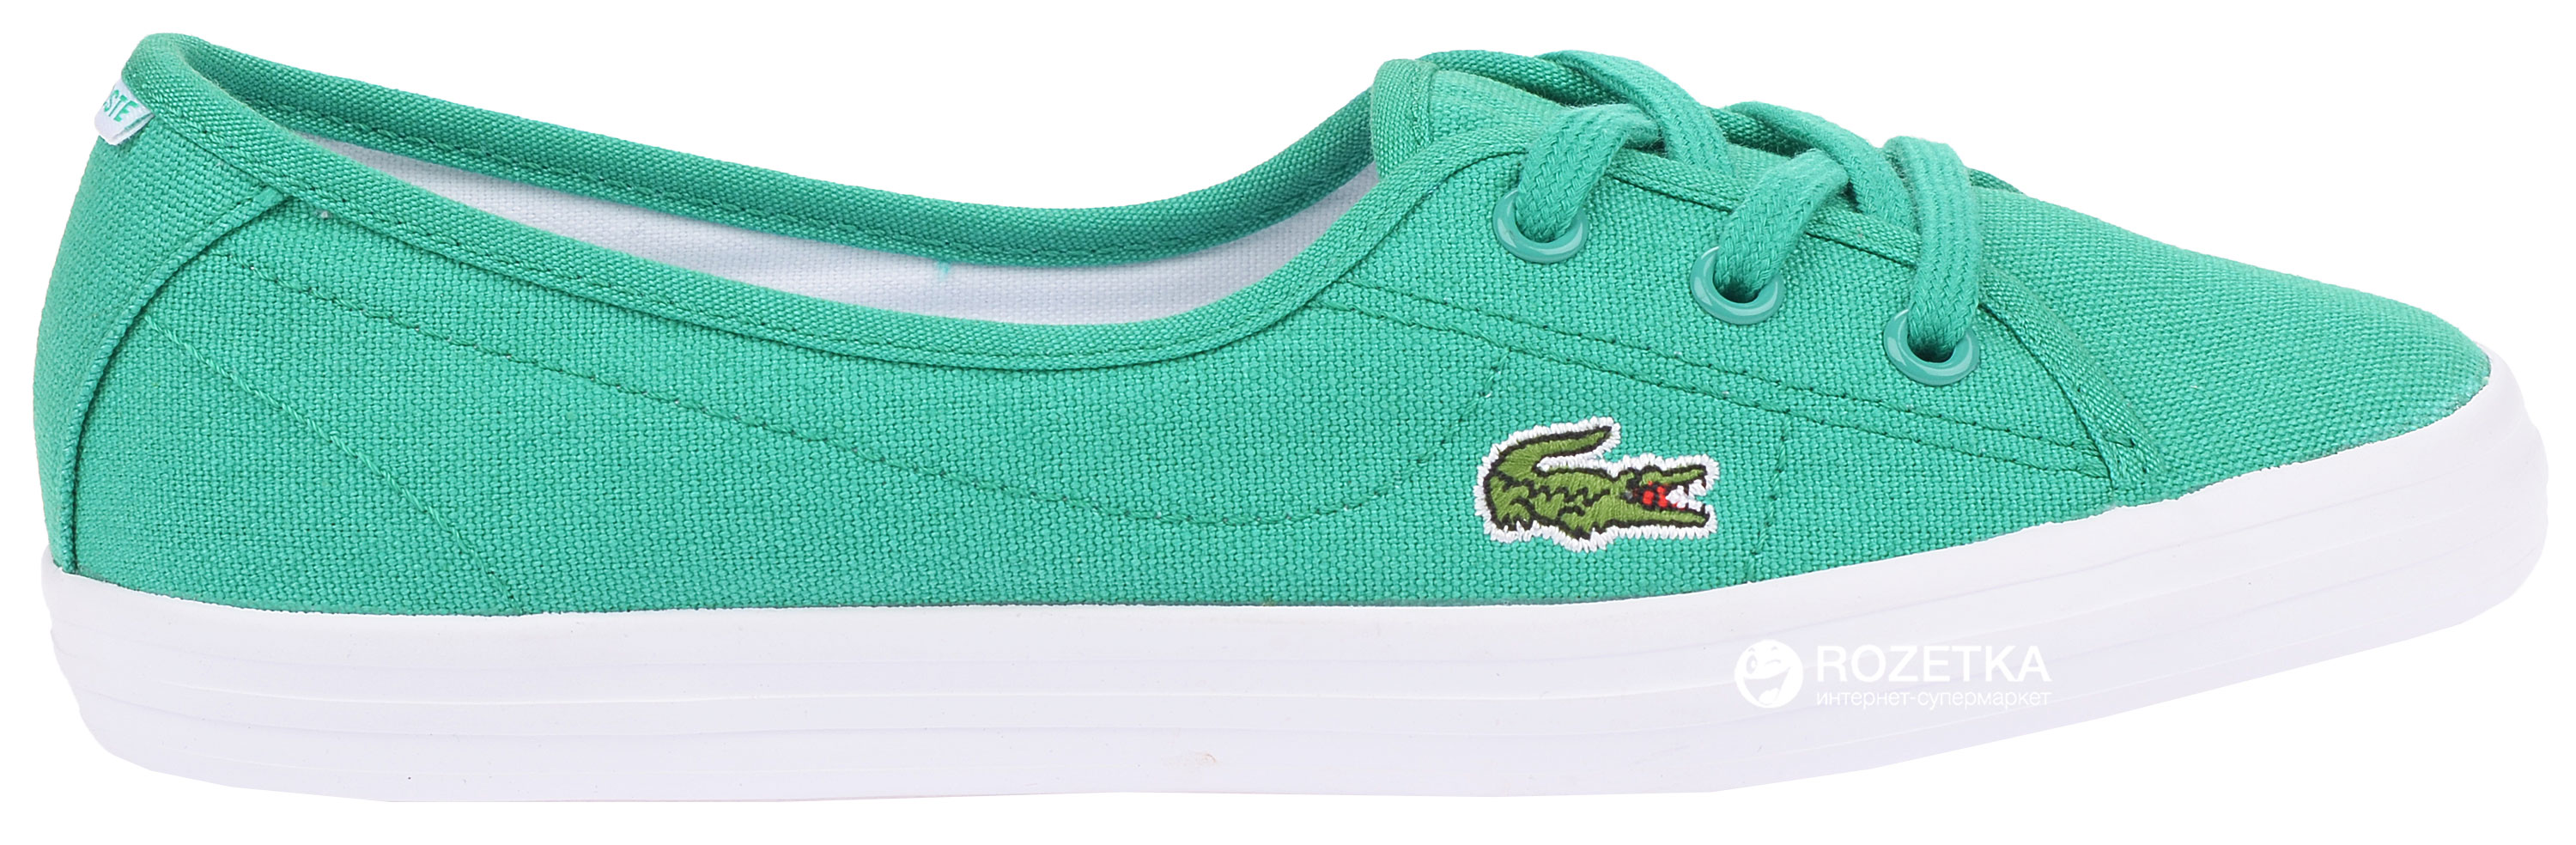 Кеды Lacoste Ziane Chunky RES 729SPW1027GG2 39.5 (6.5) 26 см (5021725141972) 9d888c1a97aa2